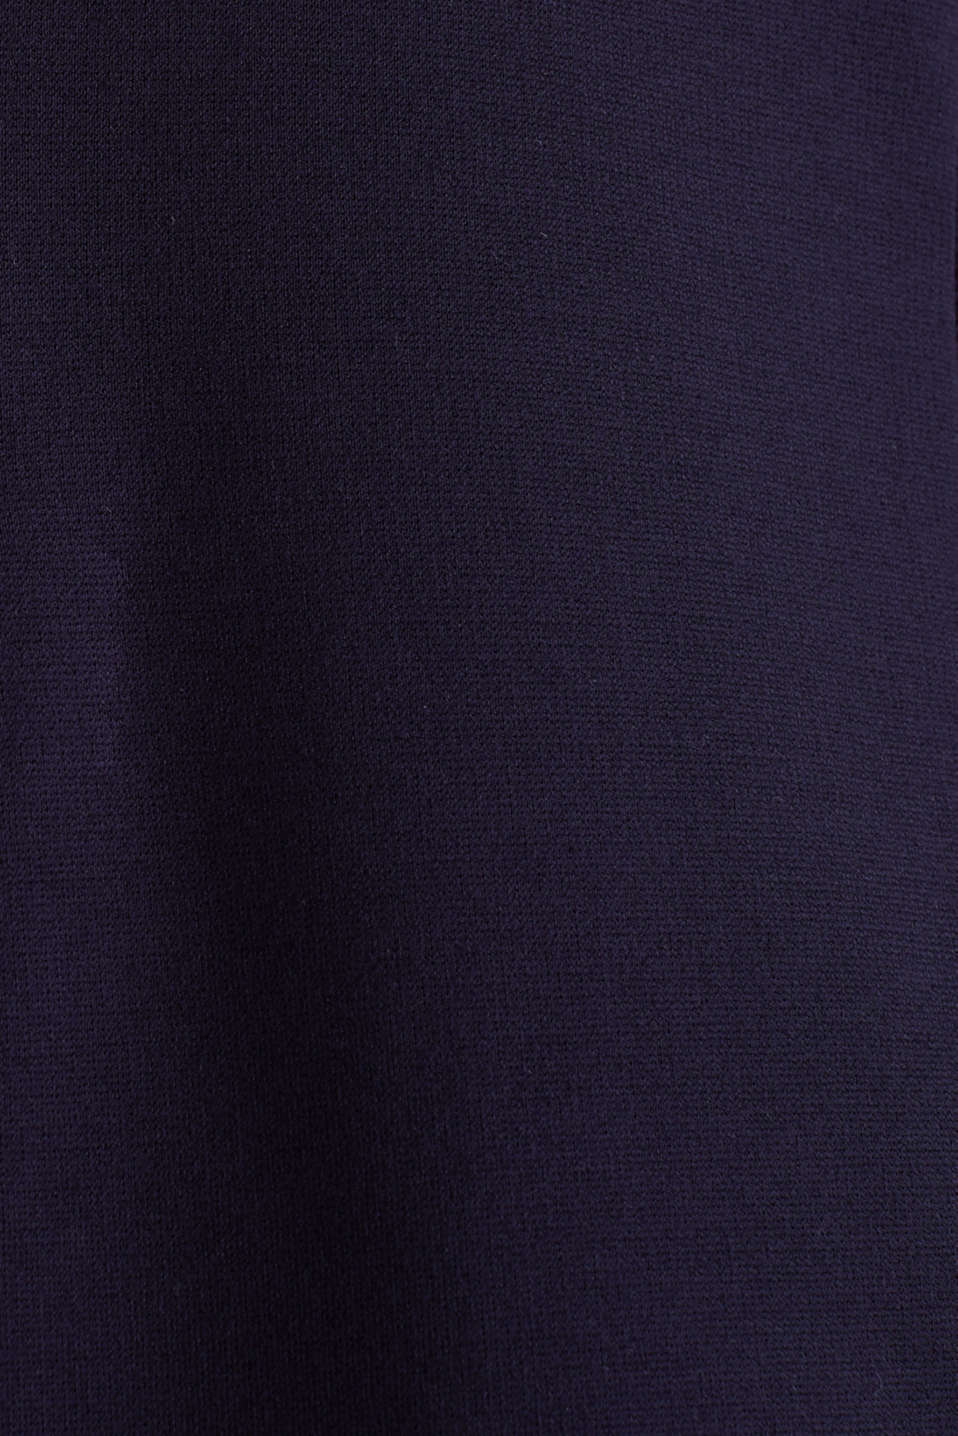 Stretch jersey blazer with pockets, NAVY, detail image number 1